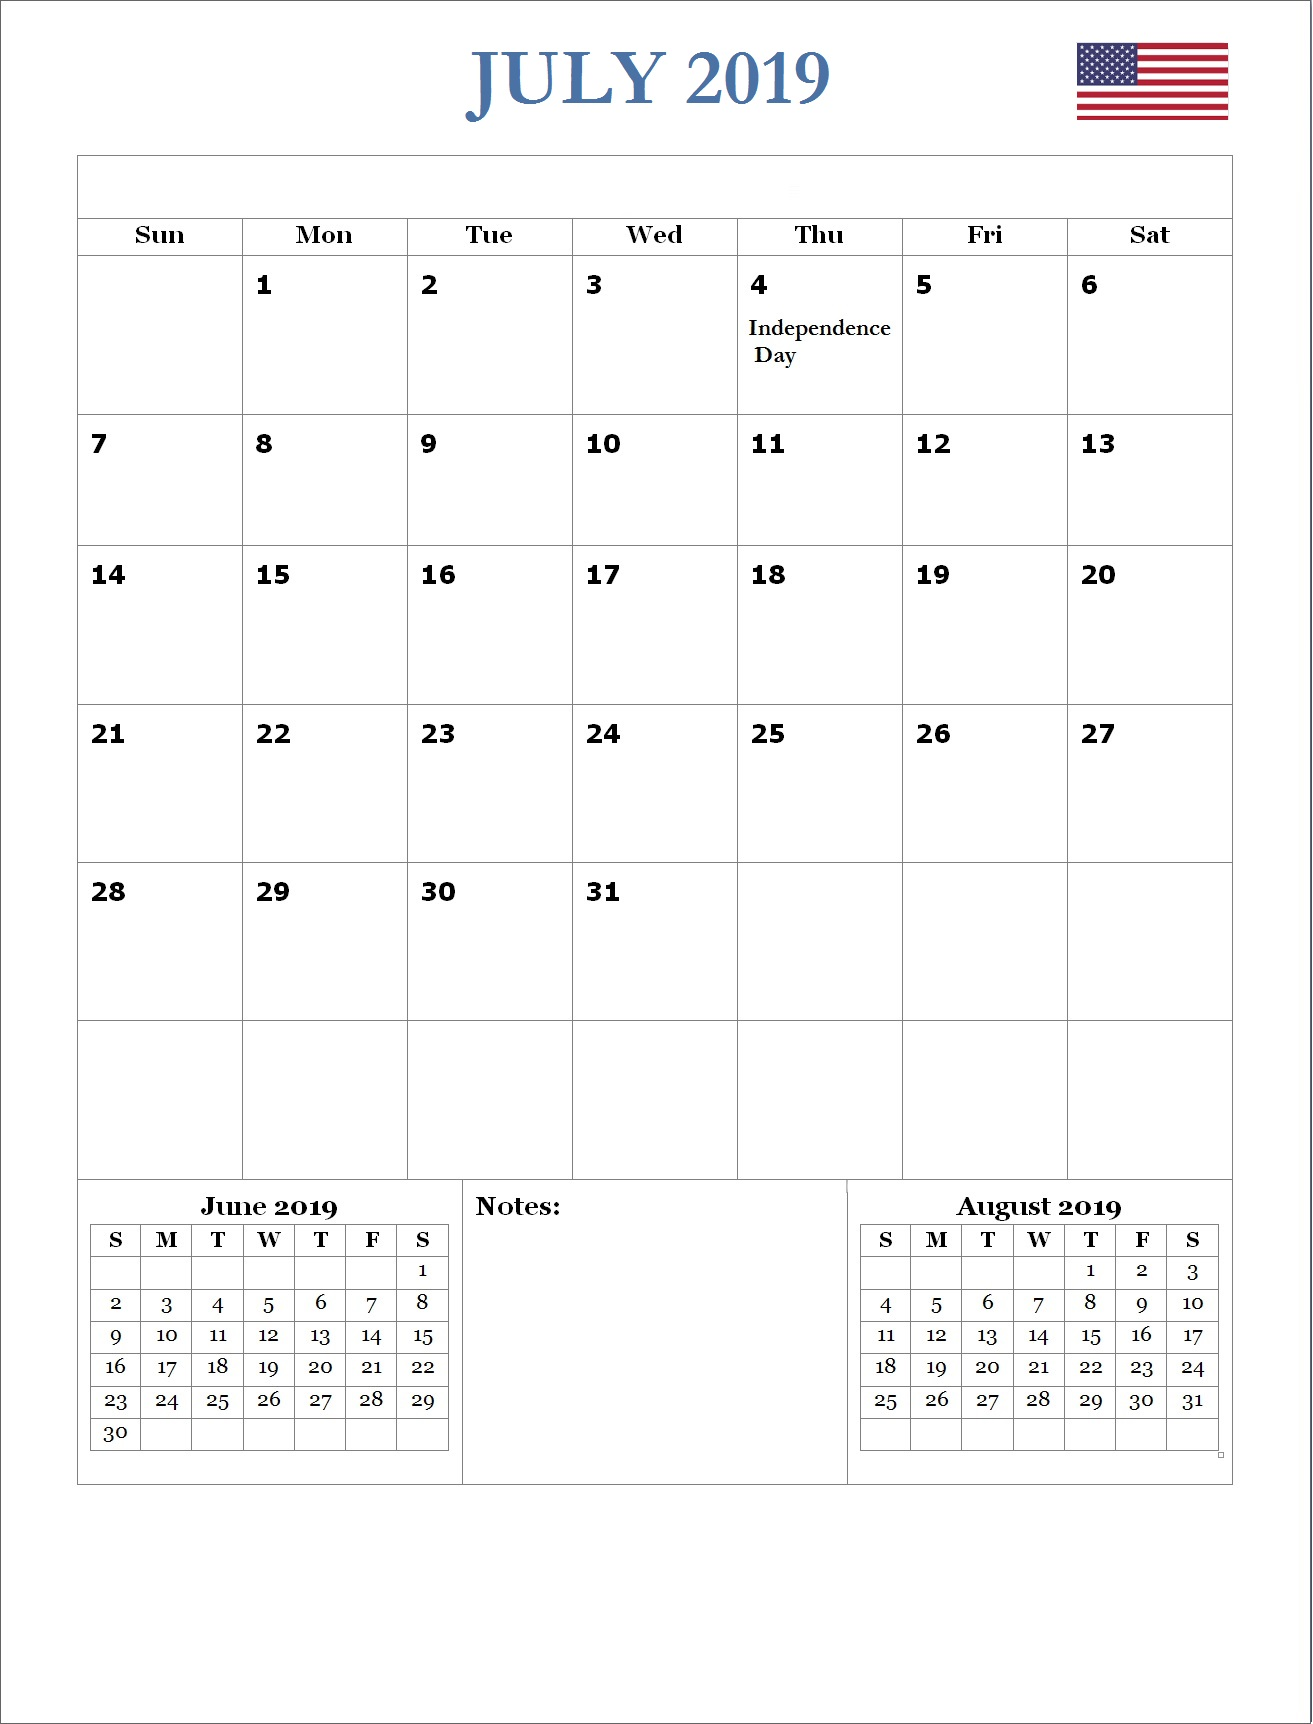 2019 July USA Holidays Calendar